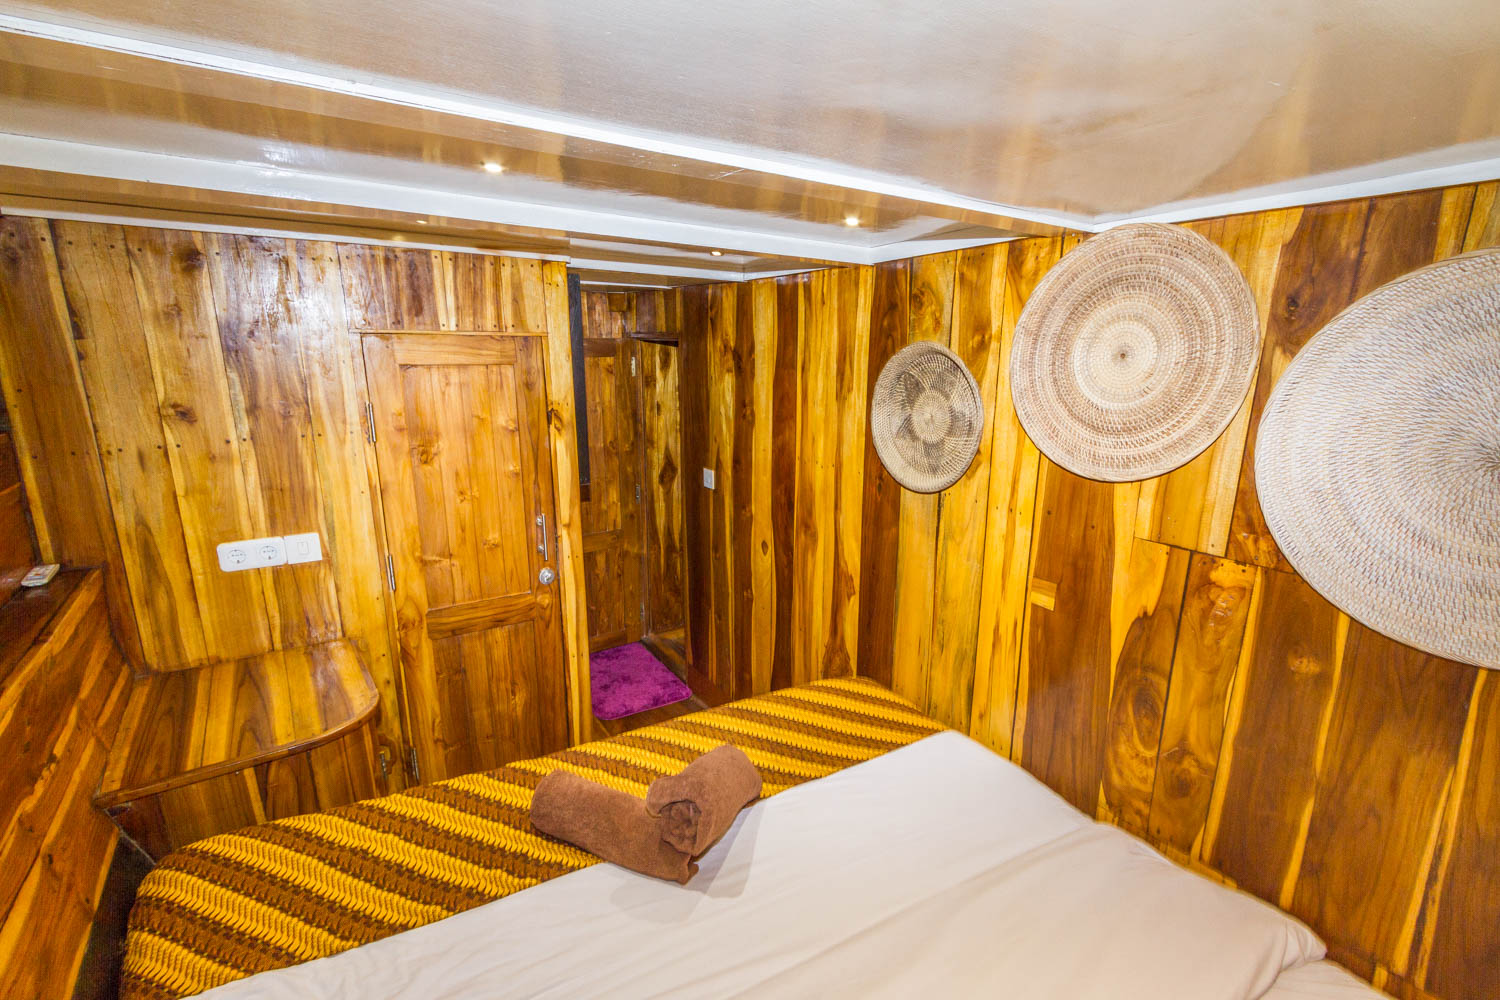 kelana_boat_cruise_decoration_bedroom_komodo.JPG